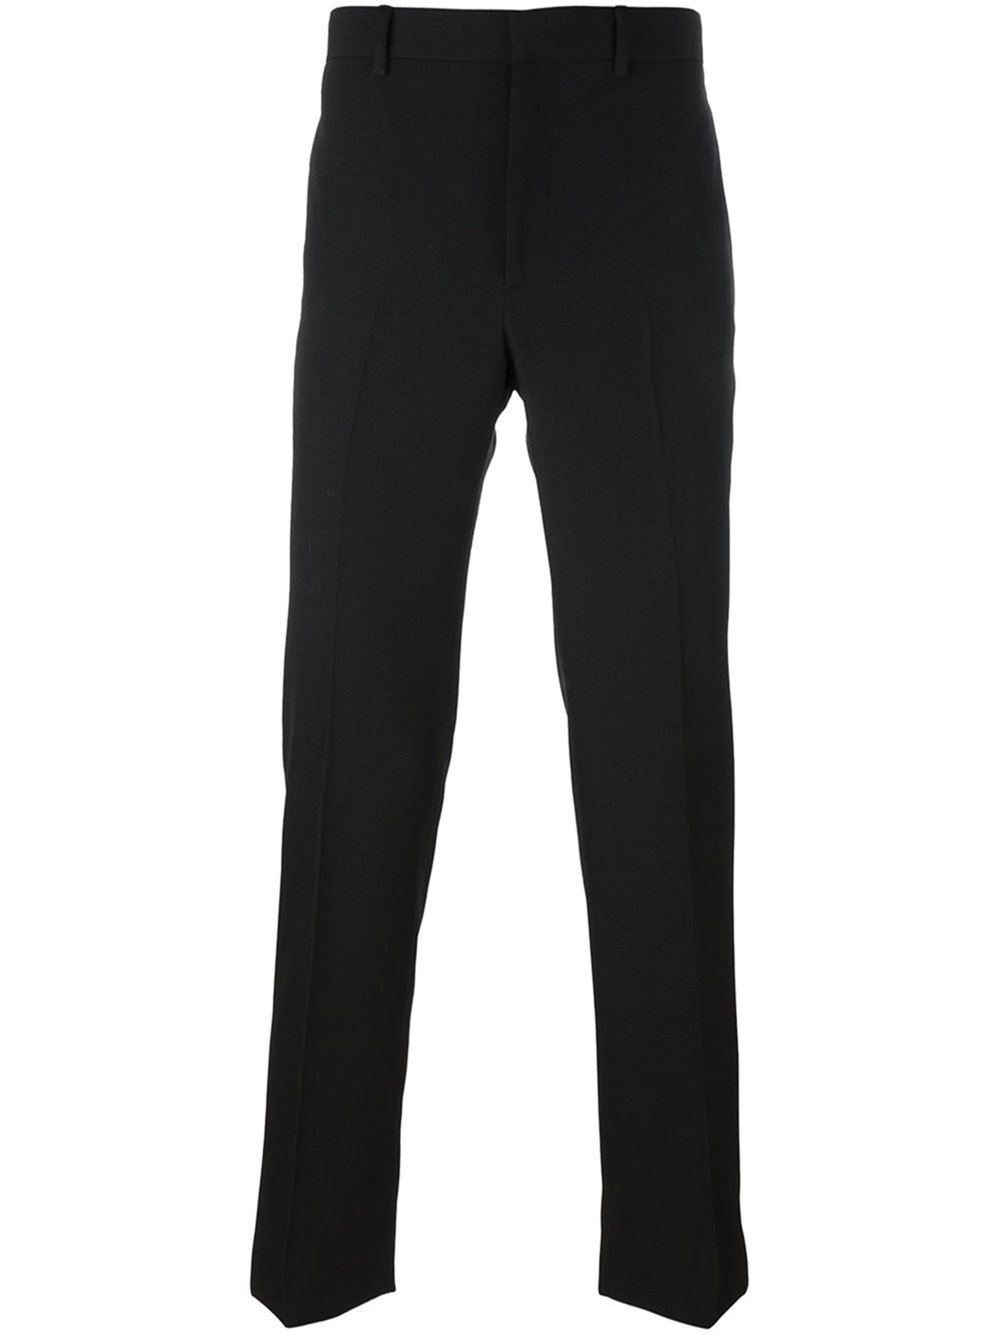 5.Tailored Trousers by Givenchy 褲子‭ ‬$1,320,  farfetch.ca